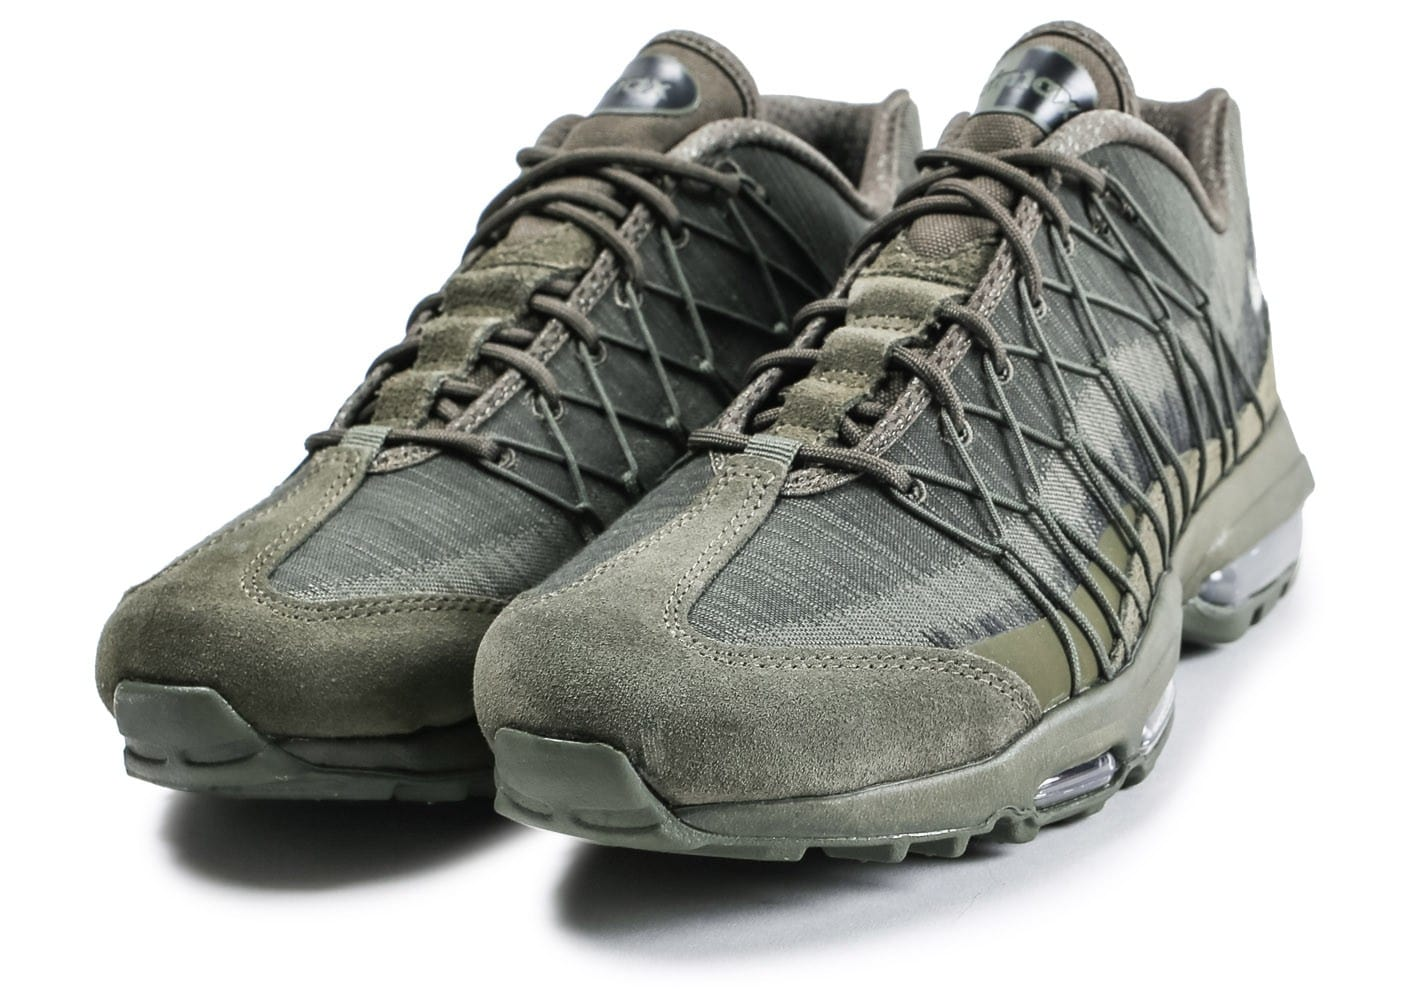 Nike Air Max 95 Ultra Jacquard chaussures olive